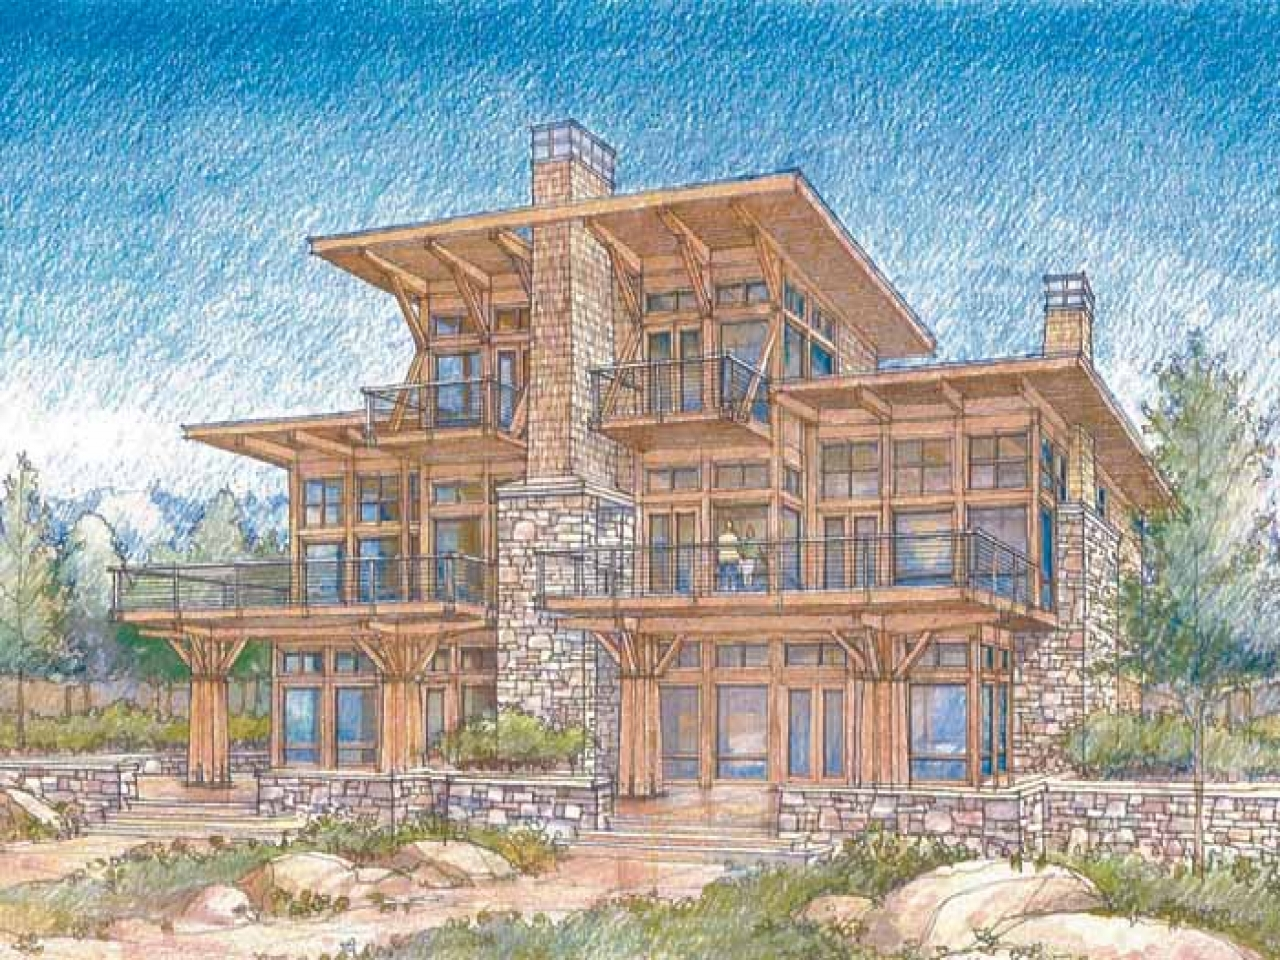 Waterfront luxury home plans modern waterfront house plans for Luxury waterfront house plans